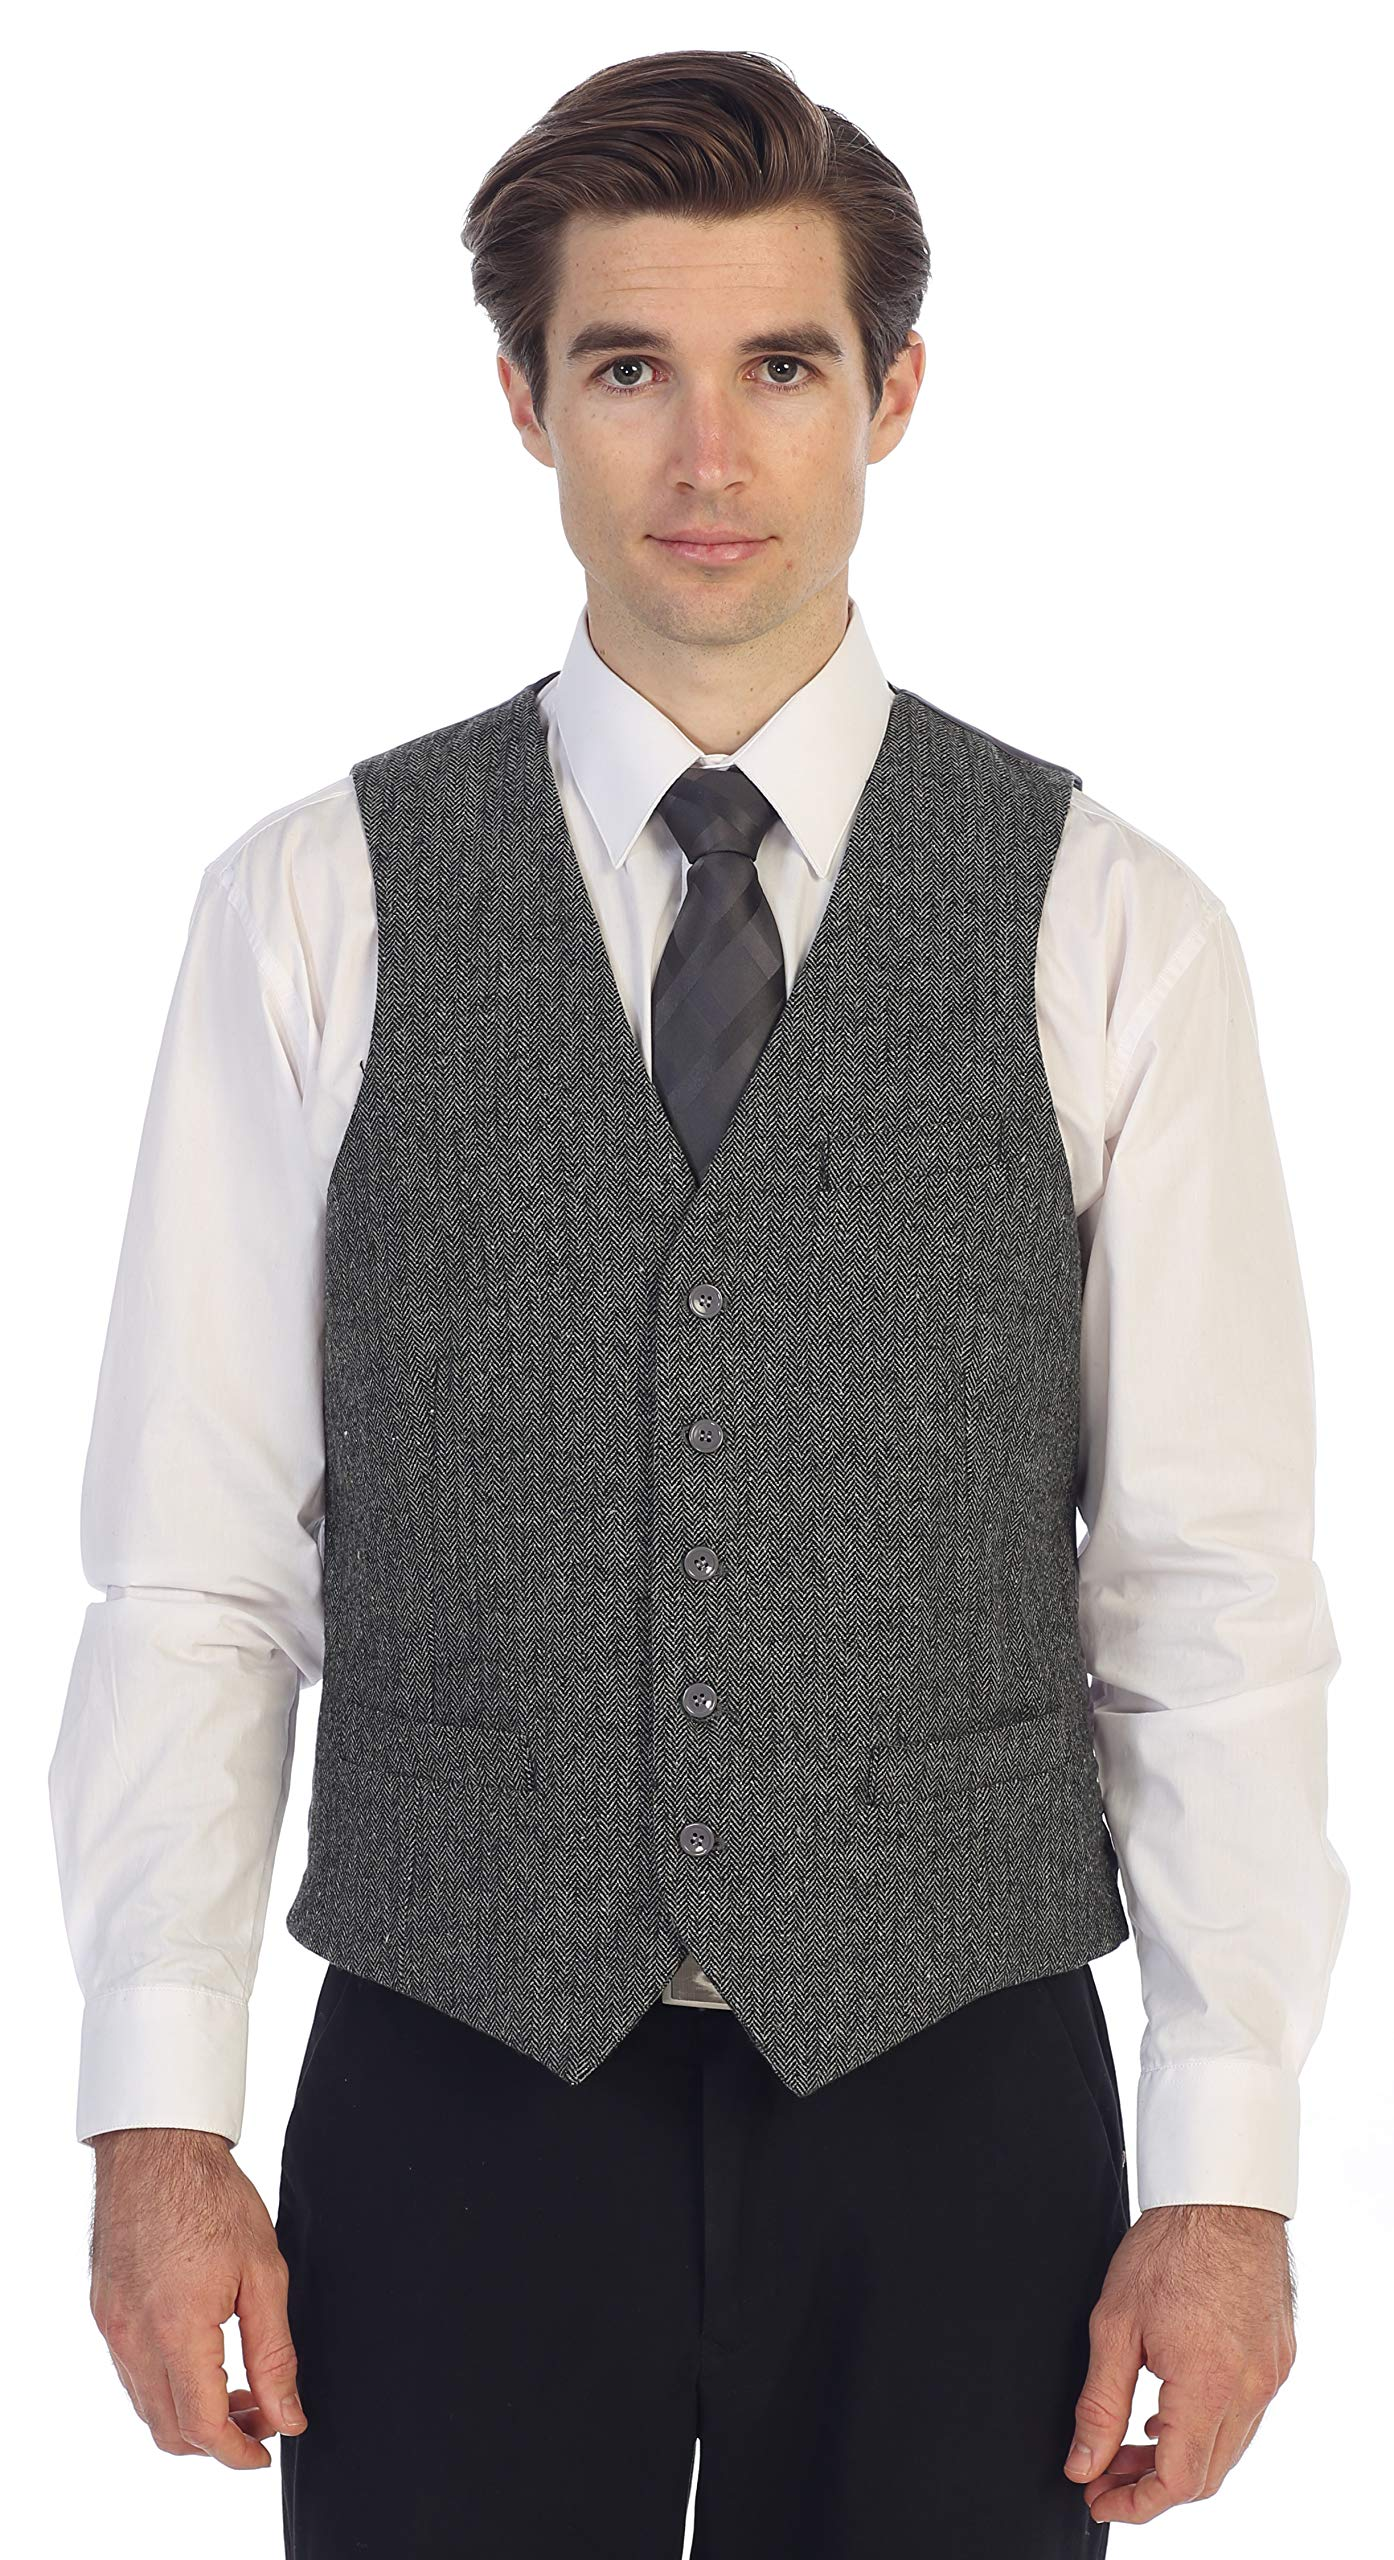 Gioberti Men's 5 Button Slim Fit Formal Herringbone Tweed Suit Vest, Gray Herringbone, Large by Gioberti